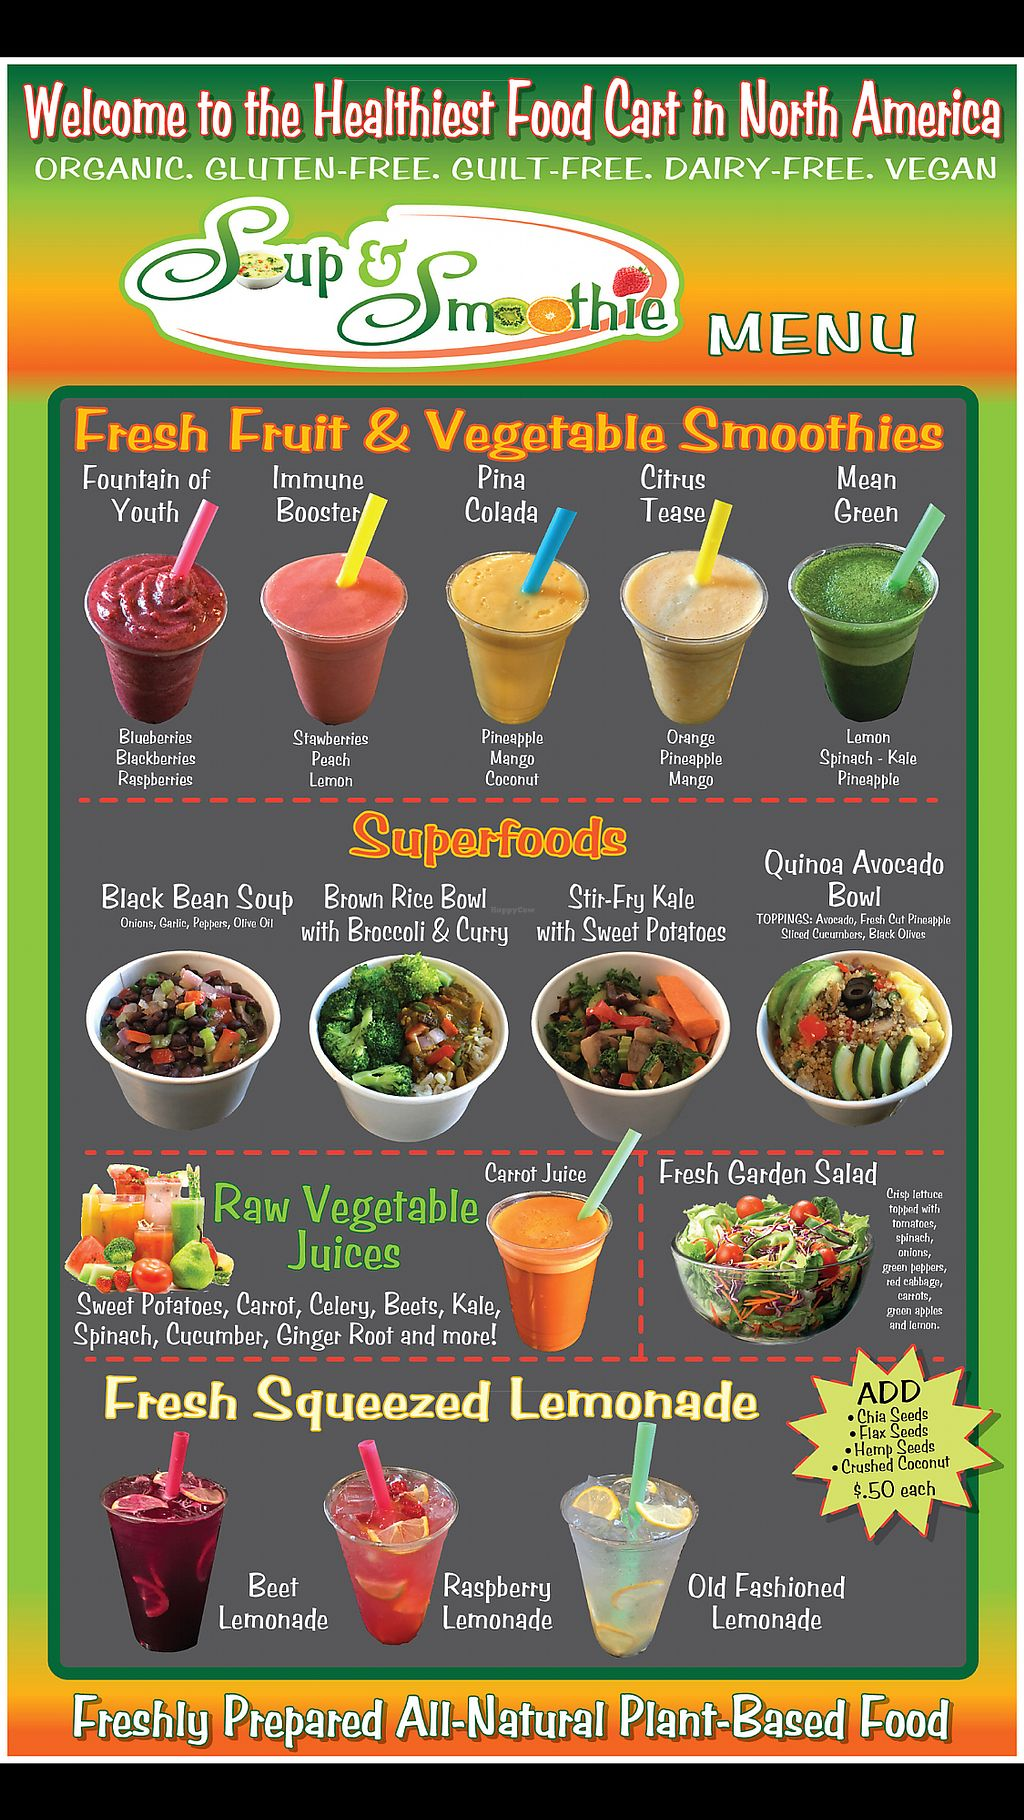 """Photo of Soup and Smoothie - Food Truck  by <a href=""""/members/profile/SimeonTobby"""">SimeonTobby</a> <br/>Soup & Smoothie - Menu <br/> February 21, 2018  - <a href='/contact/abuse/image/110438/361926'>Report</a>"""